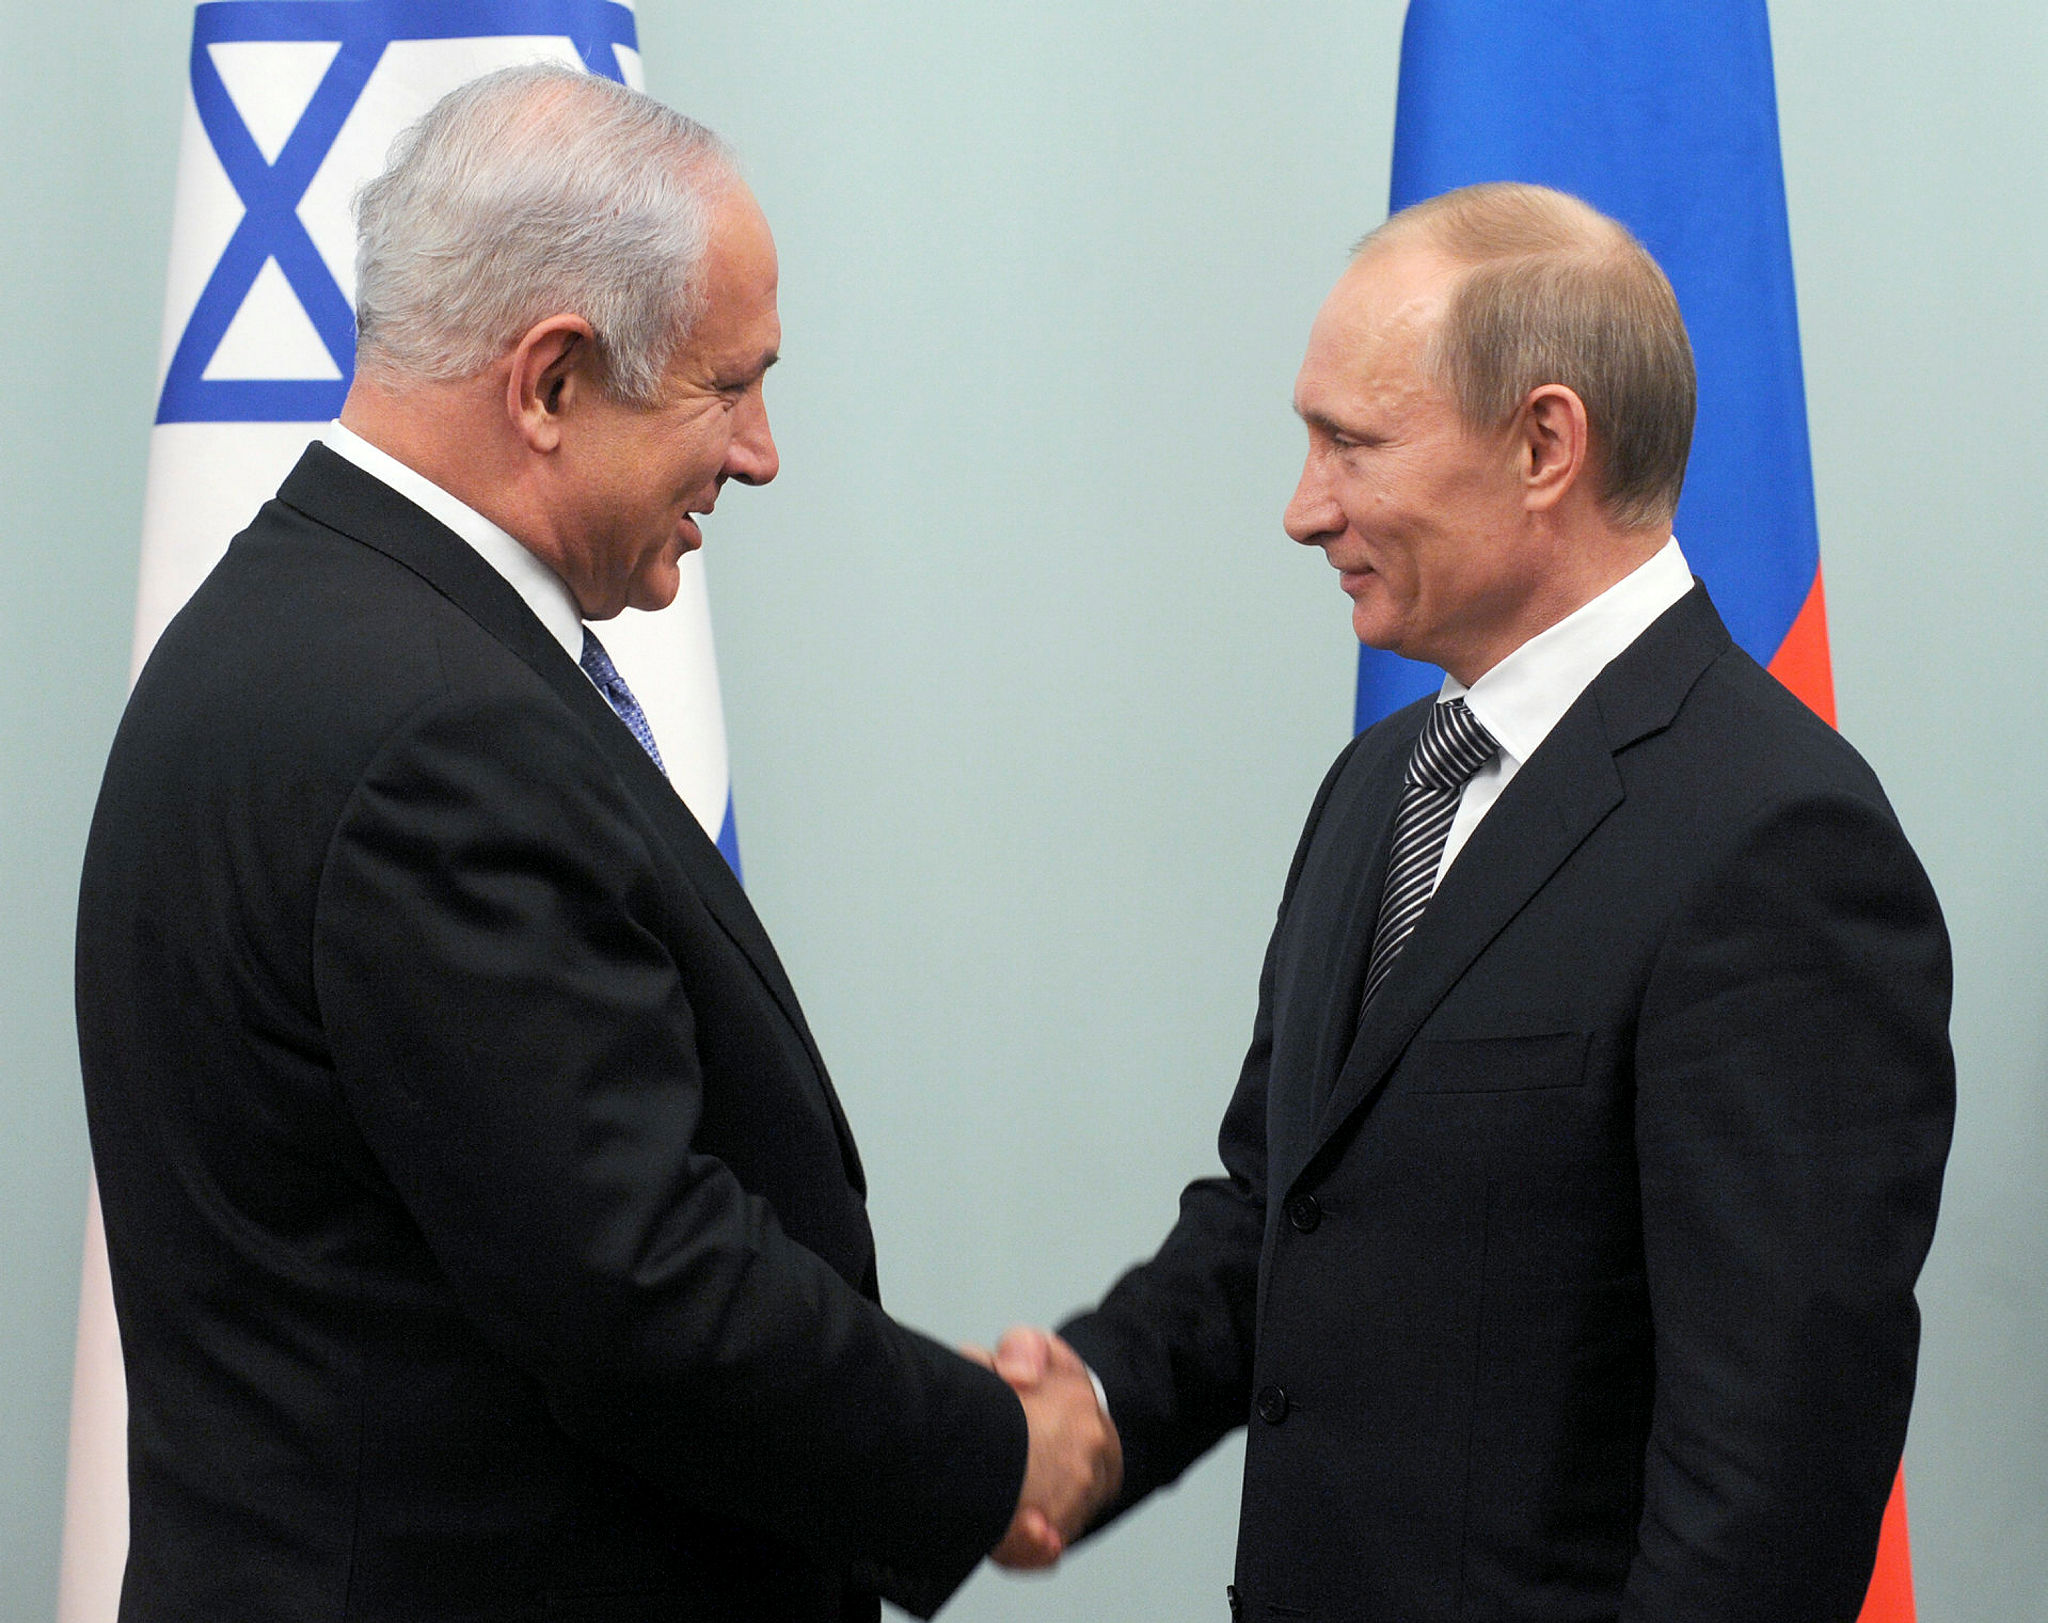 Prime Minister Netanyahu meets with the Prime Minister of Russia Vladimir Putin